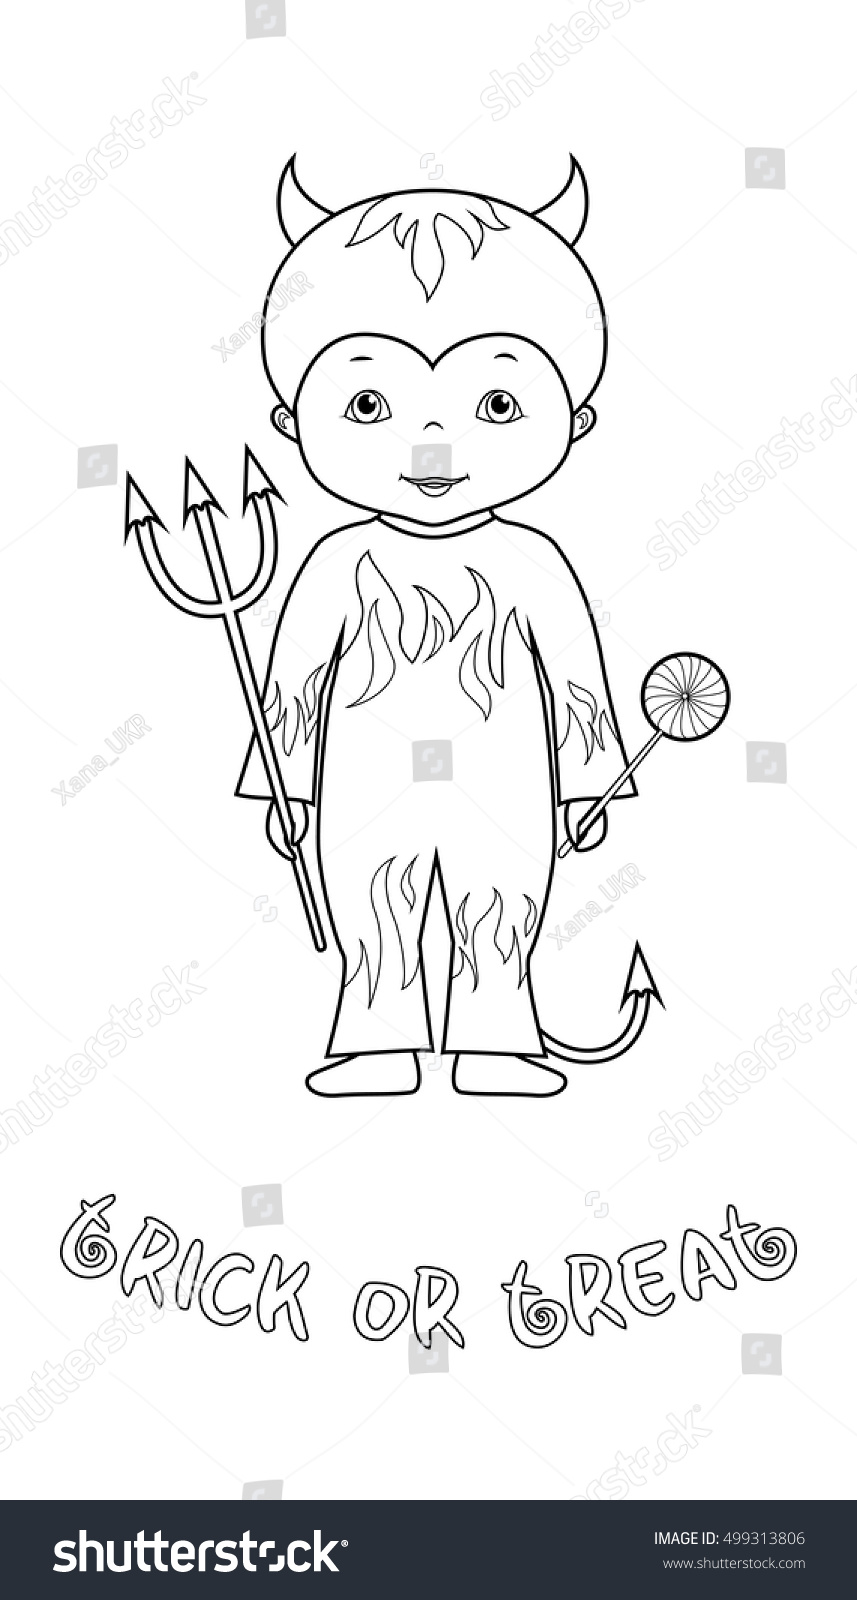 Trick Treat Halloween Vector Coloring Page Stock Vector (Royalty ...